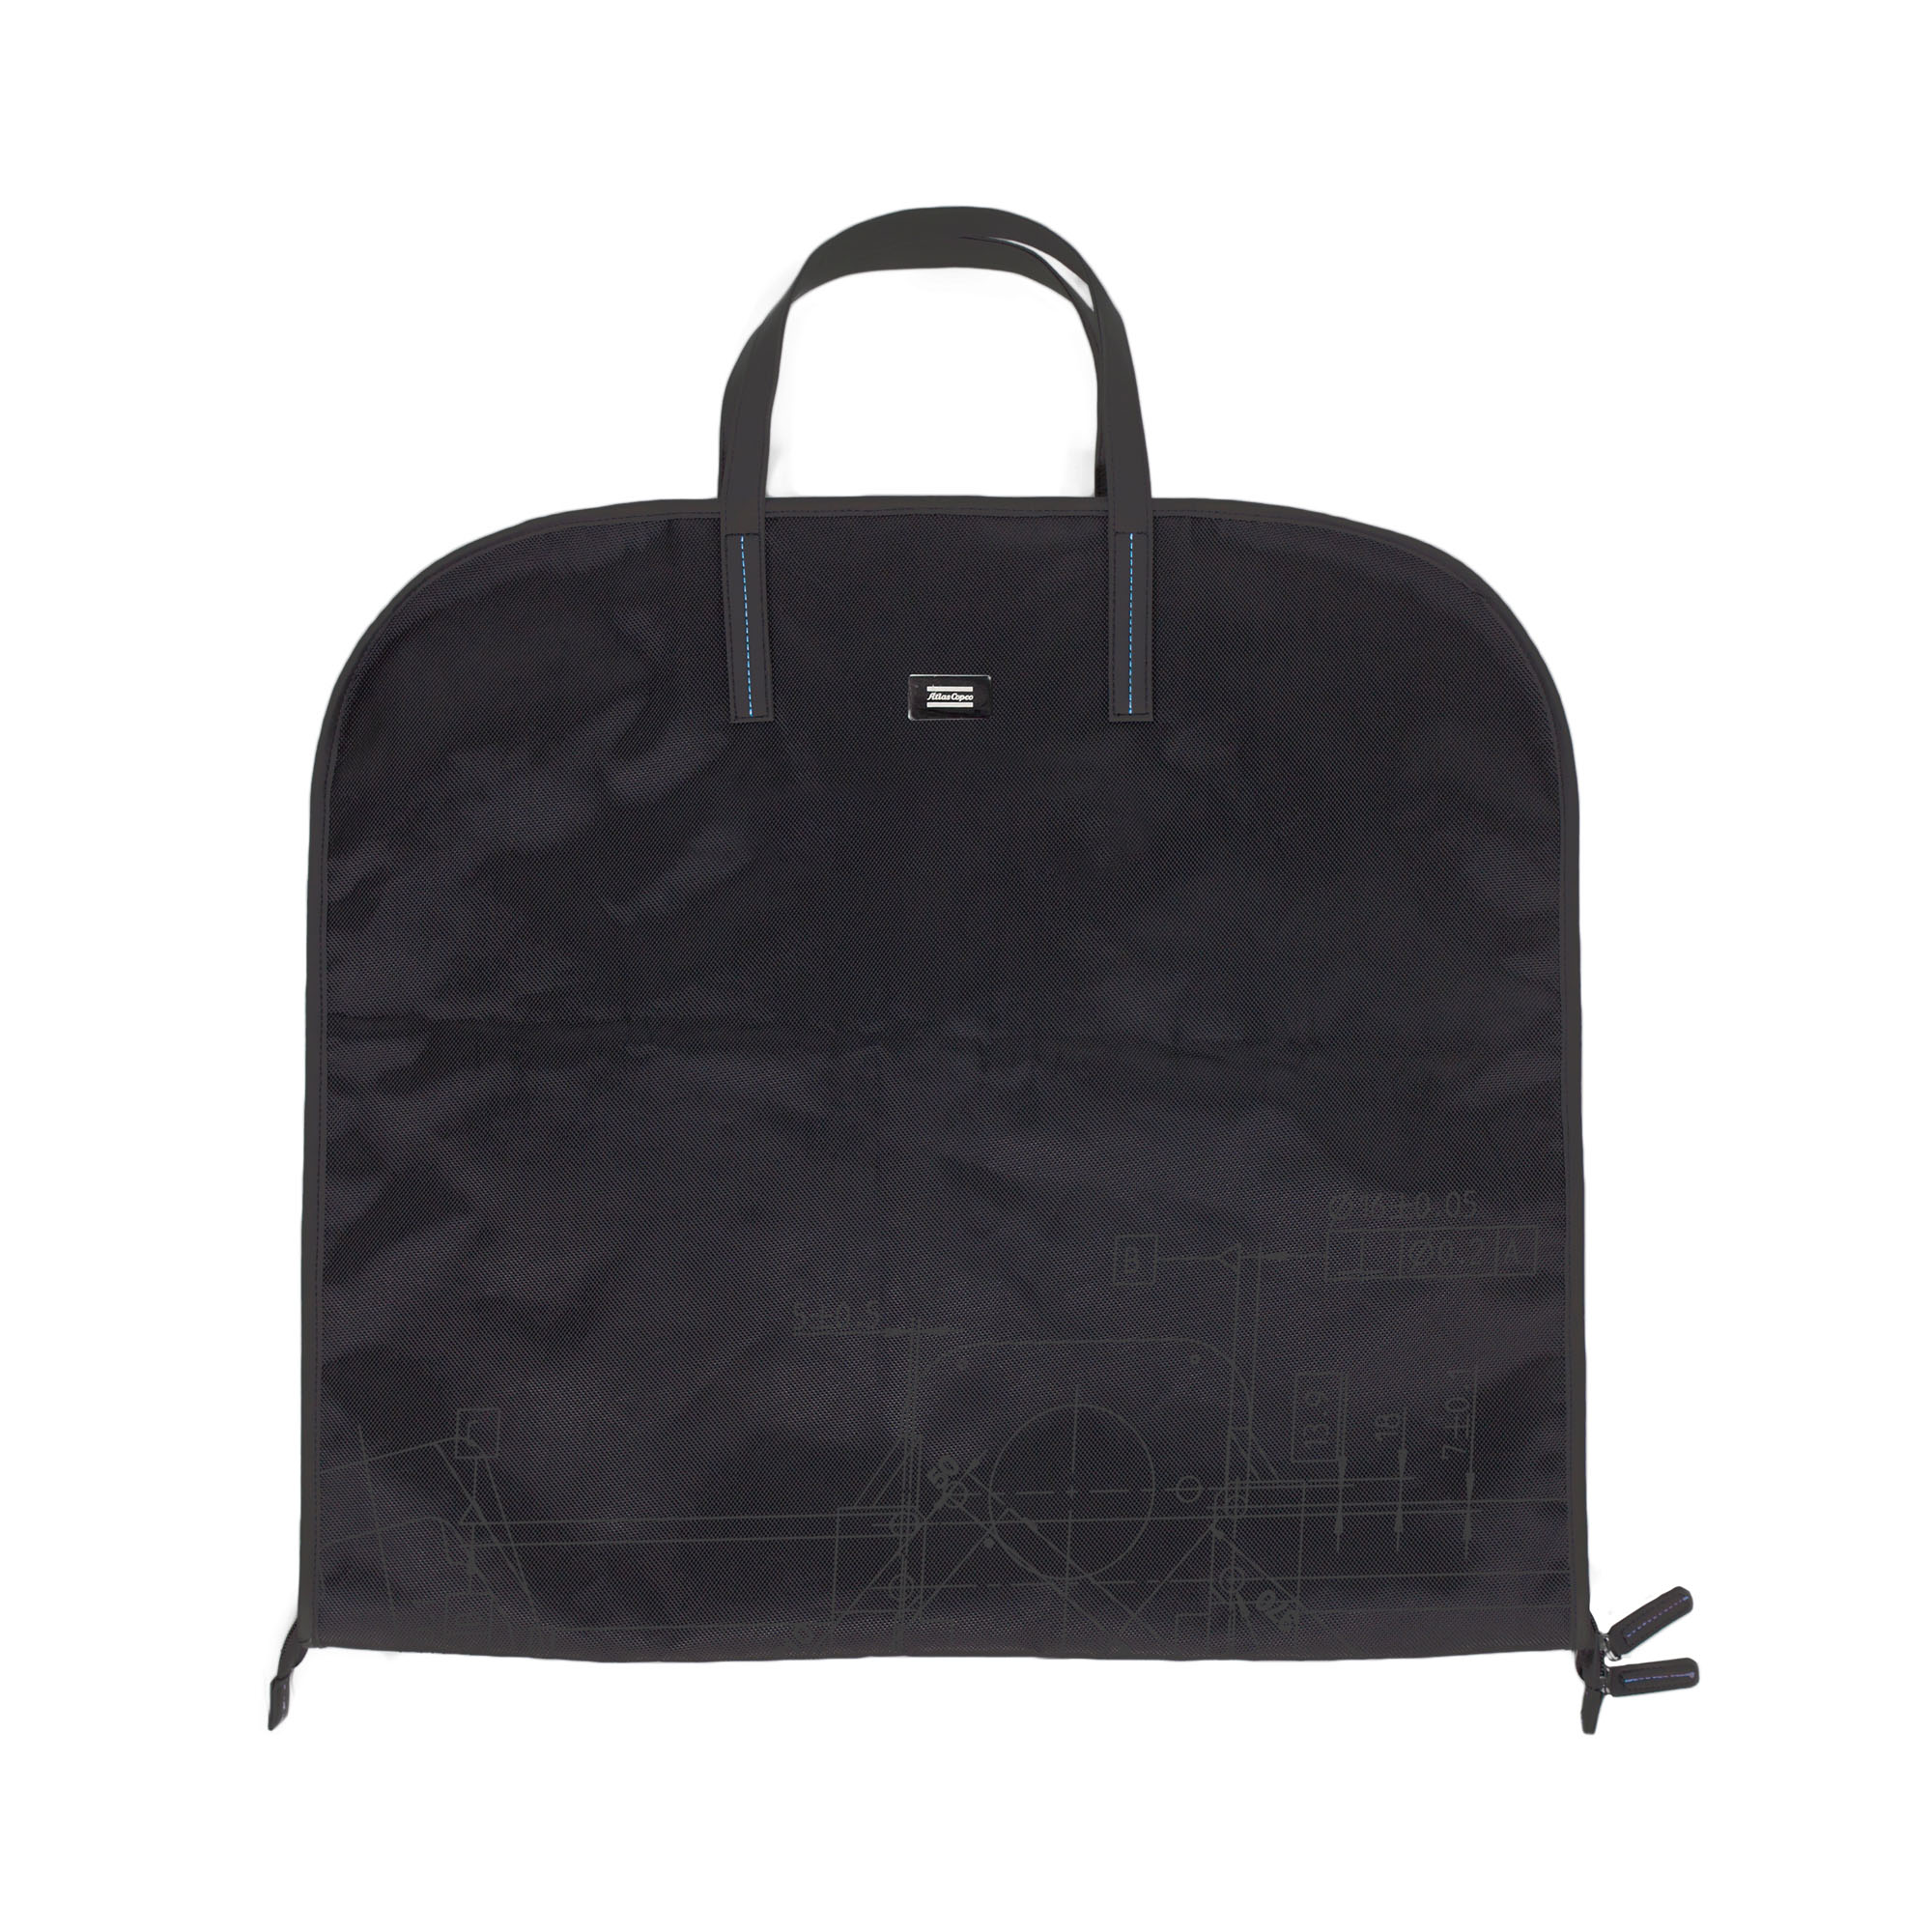 <p>Practical travel wardrobe in a smart and stylish design. Equipped with a snap hook for hanging. It has two roomy pockets on the inside for safe storage of small items. The closet is closed with a zipper.</p>